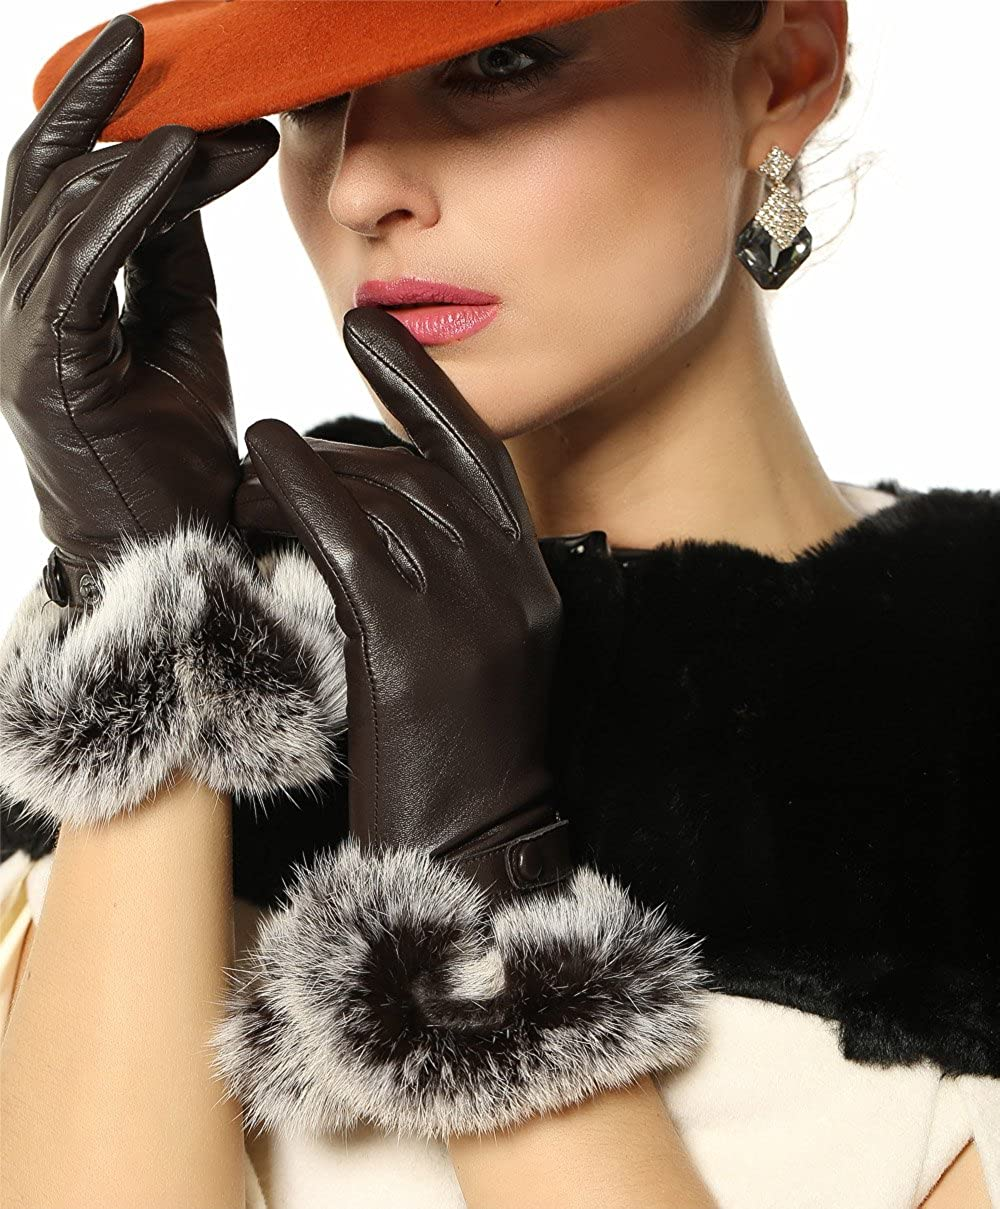 Vintage Style Gloves- Long, Wrist, Evening, Day, Leather, Lace Womens Luxury Winter Warm Genuine Soft Nappa Leather Dress Gloves with 100% Rabbit Fur Cuff $29.99 AT vintagedancer.com